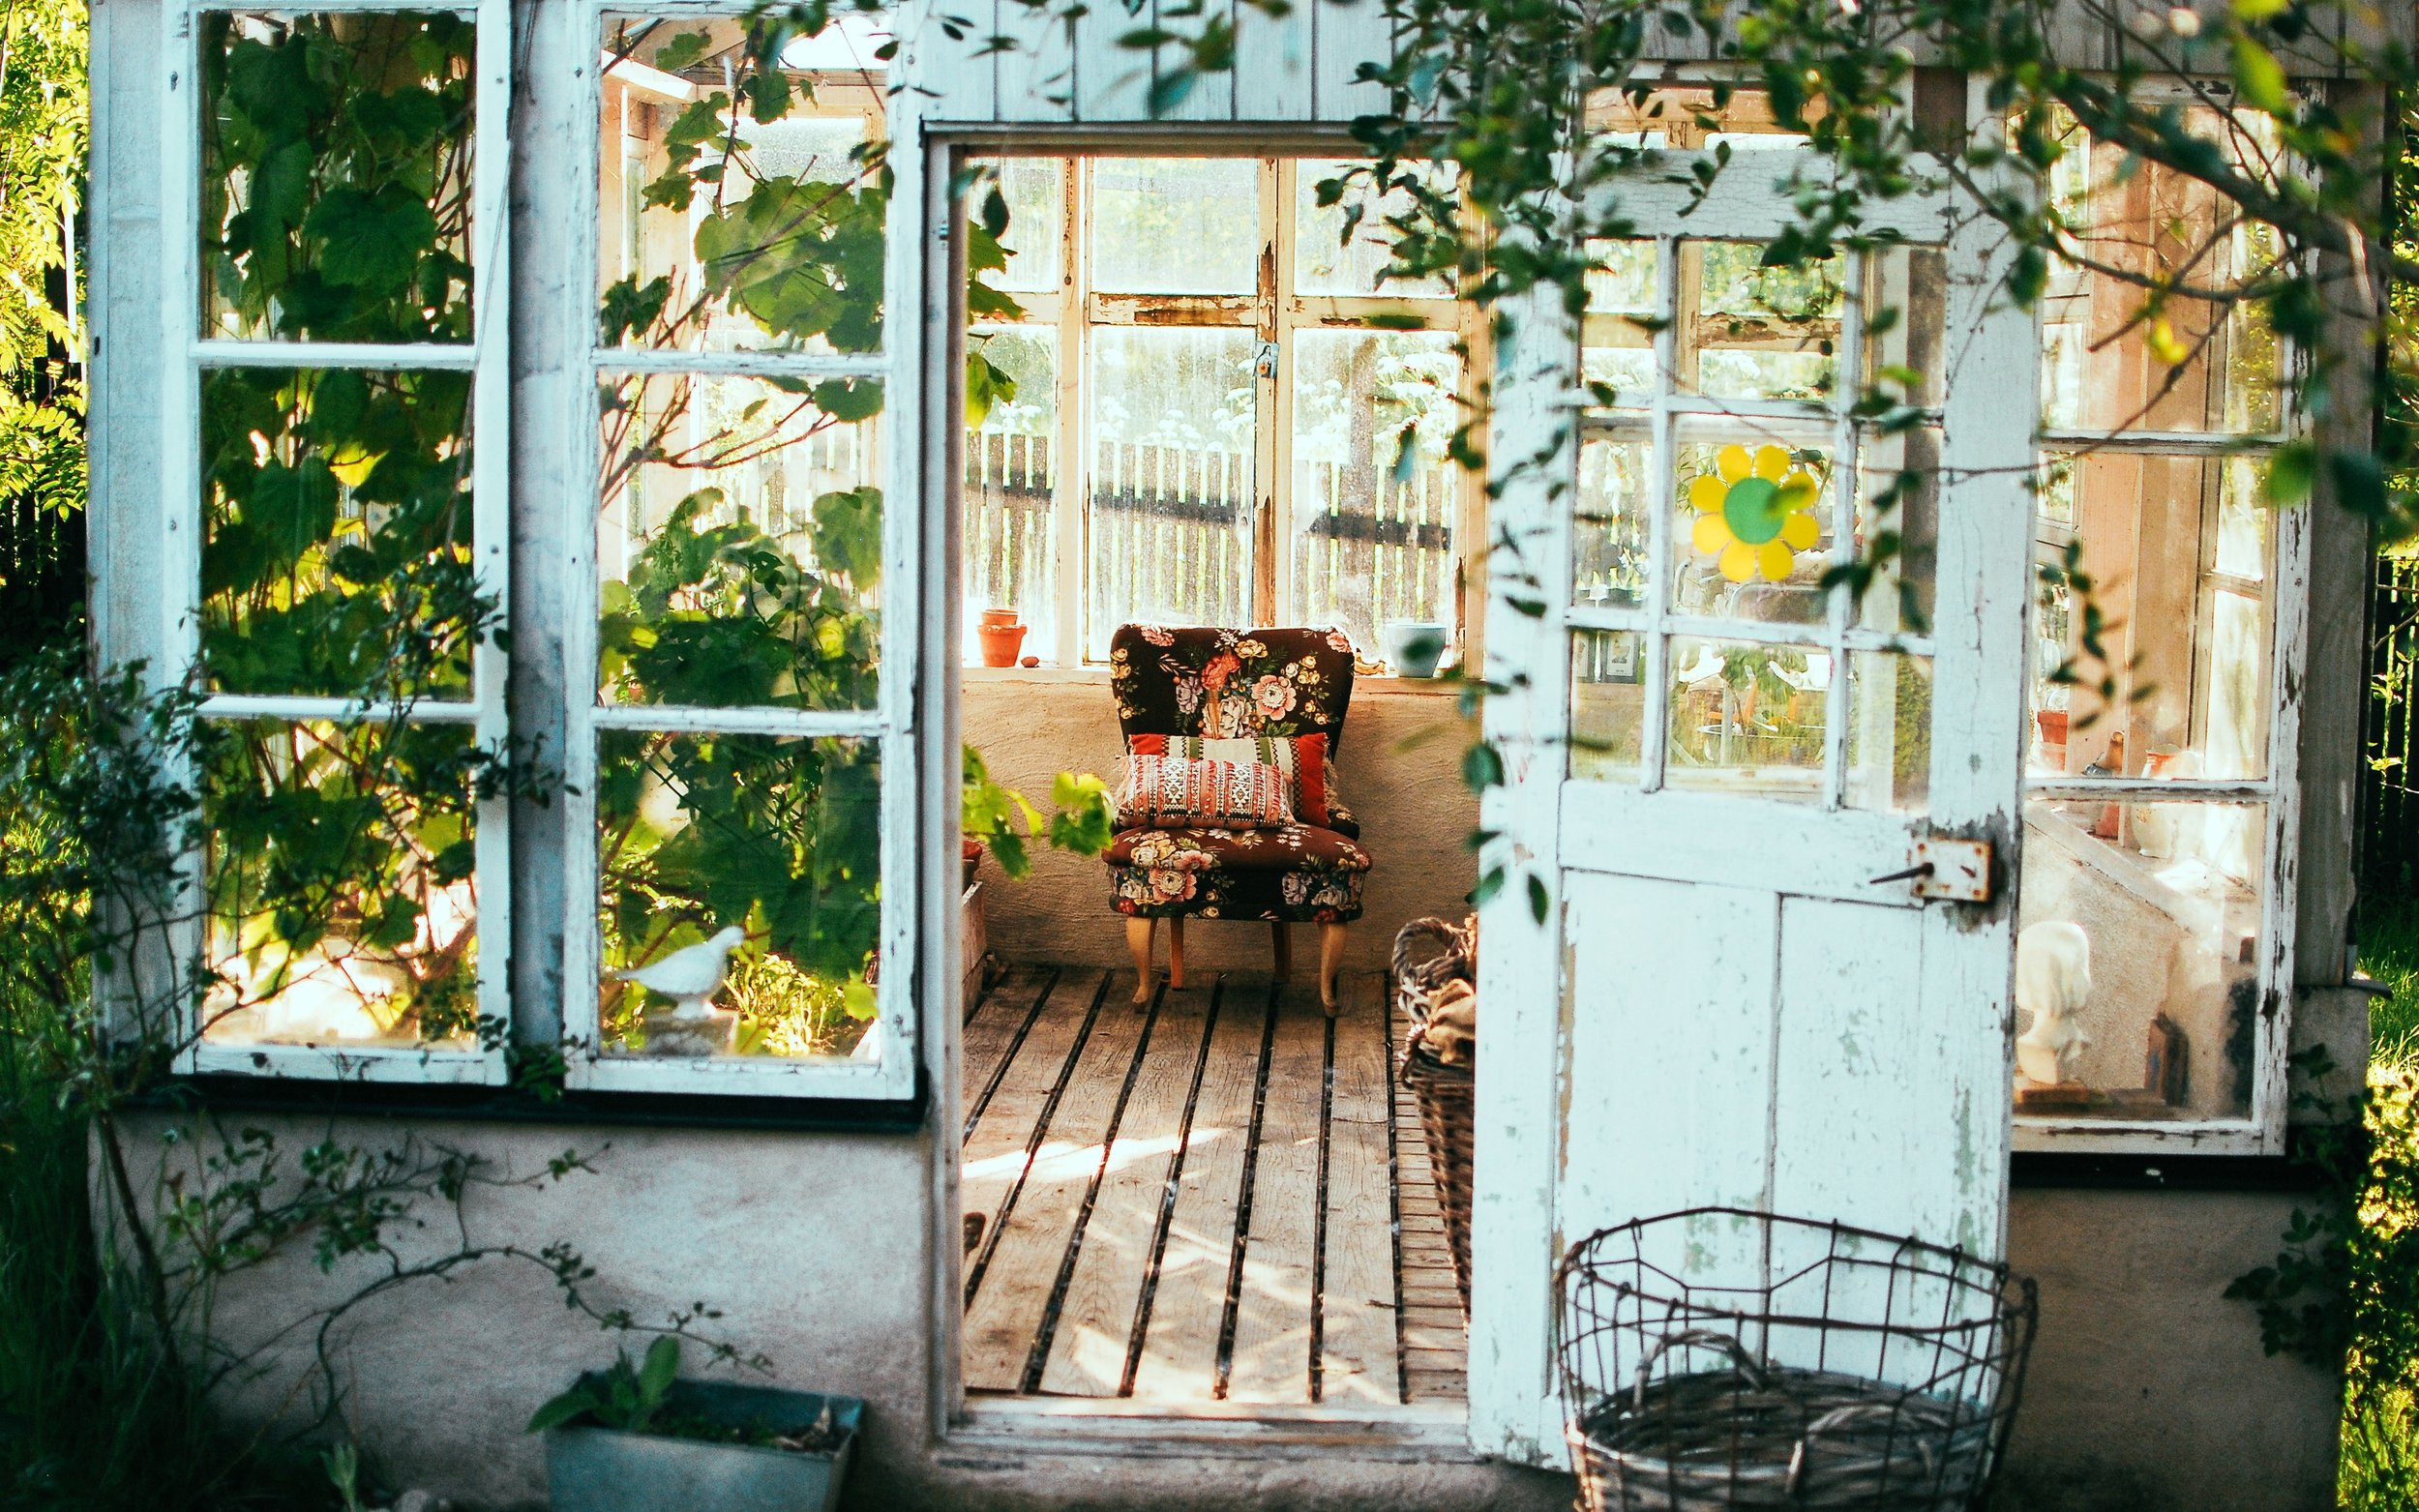 flower-chair-window-home-porch-summer-130722-pxhere.com.jpg